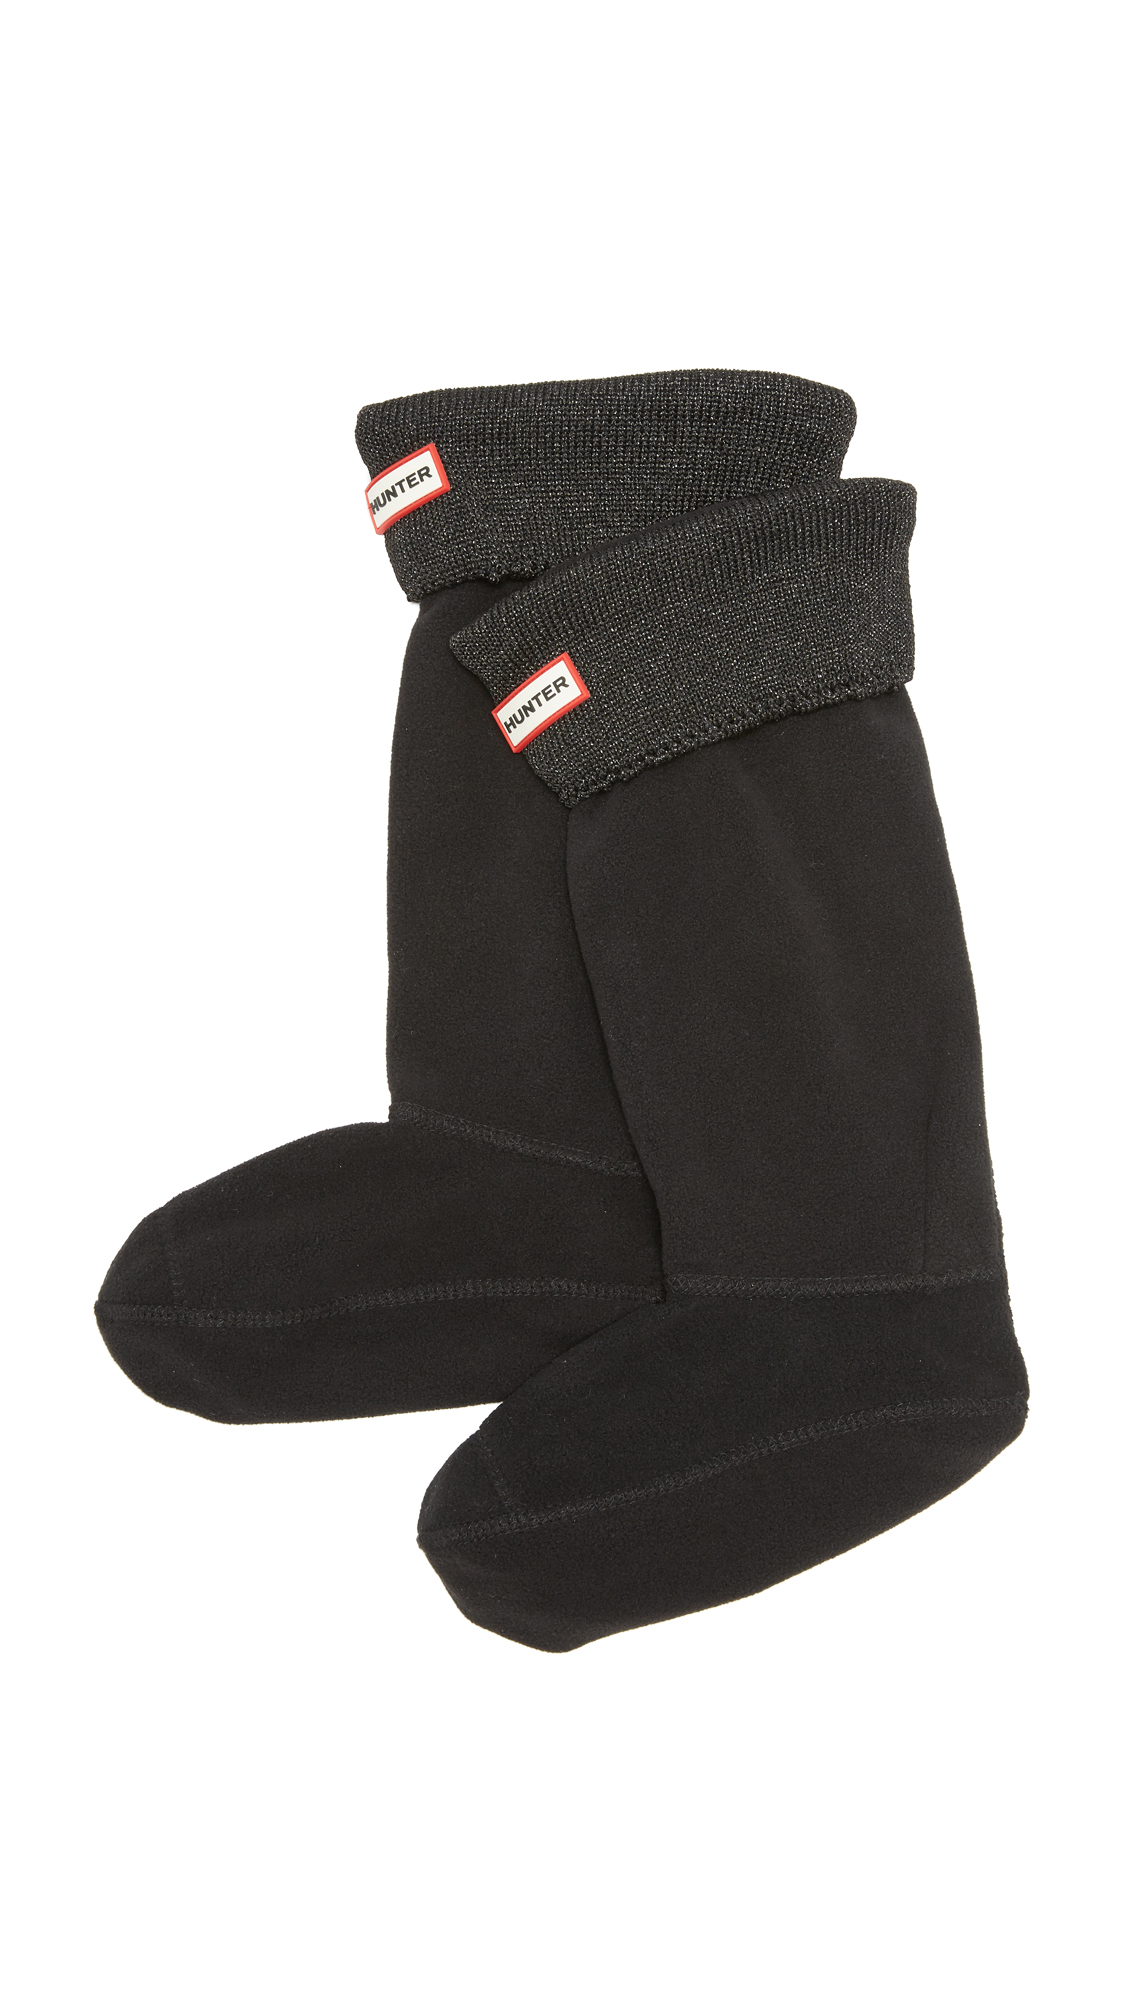 Hunter Boots Glitter Cuff Boot Socks - Black at Shopbop